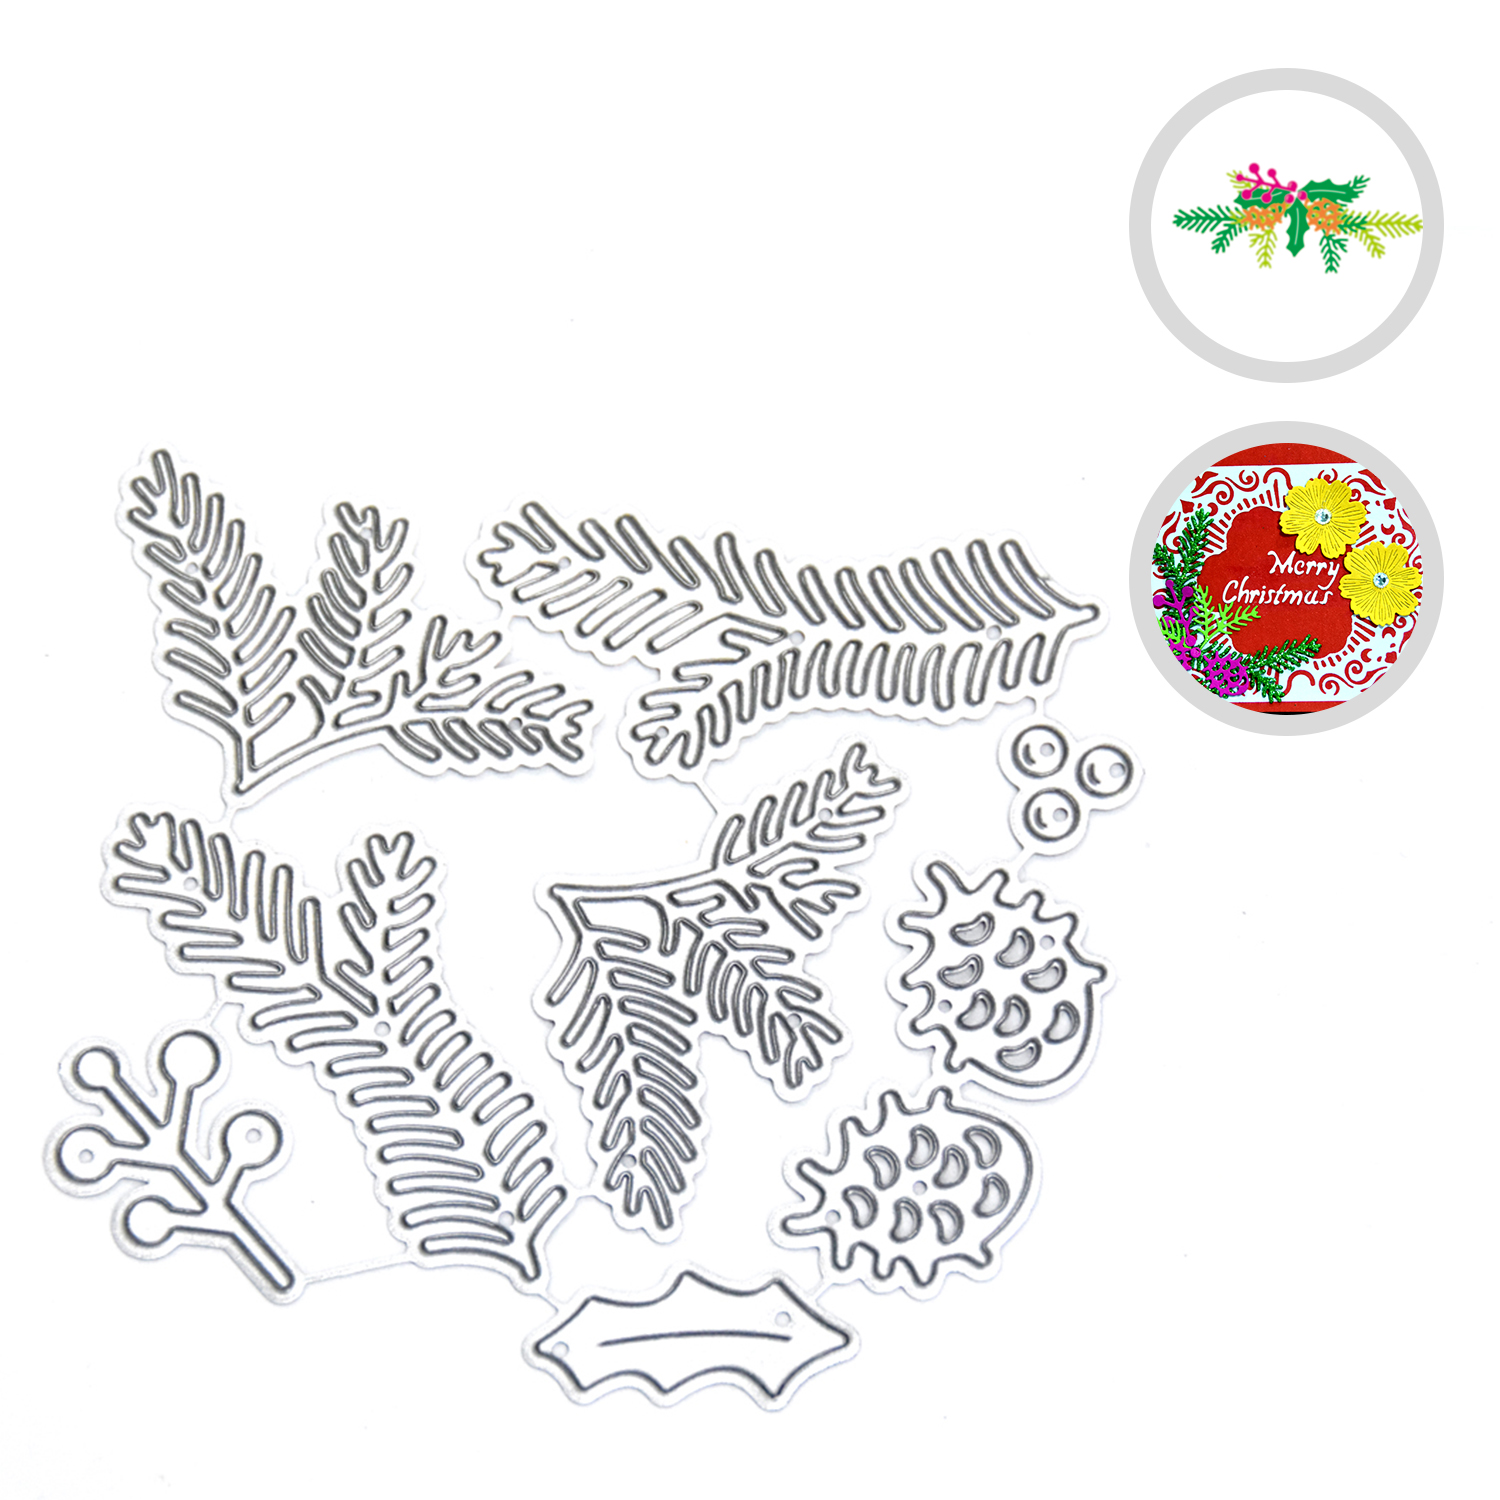 Stamps and Metal Cutting Dies for Scrapbooking Fan Leaf Alphabet Craft 2020 Die Cut Stencil Card Make Sheet Decoration